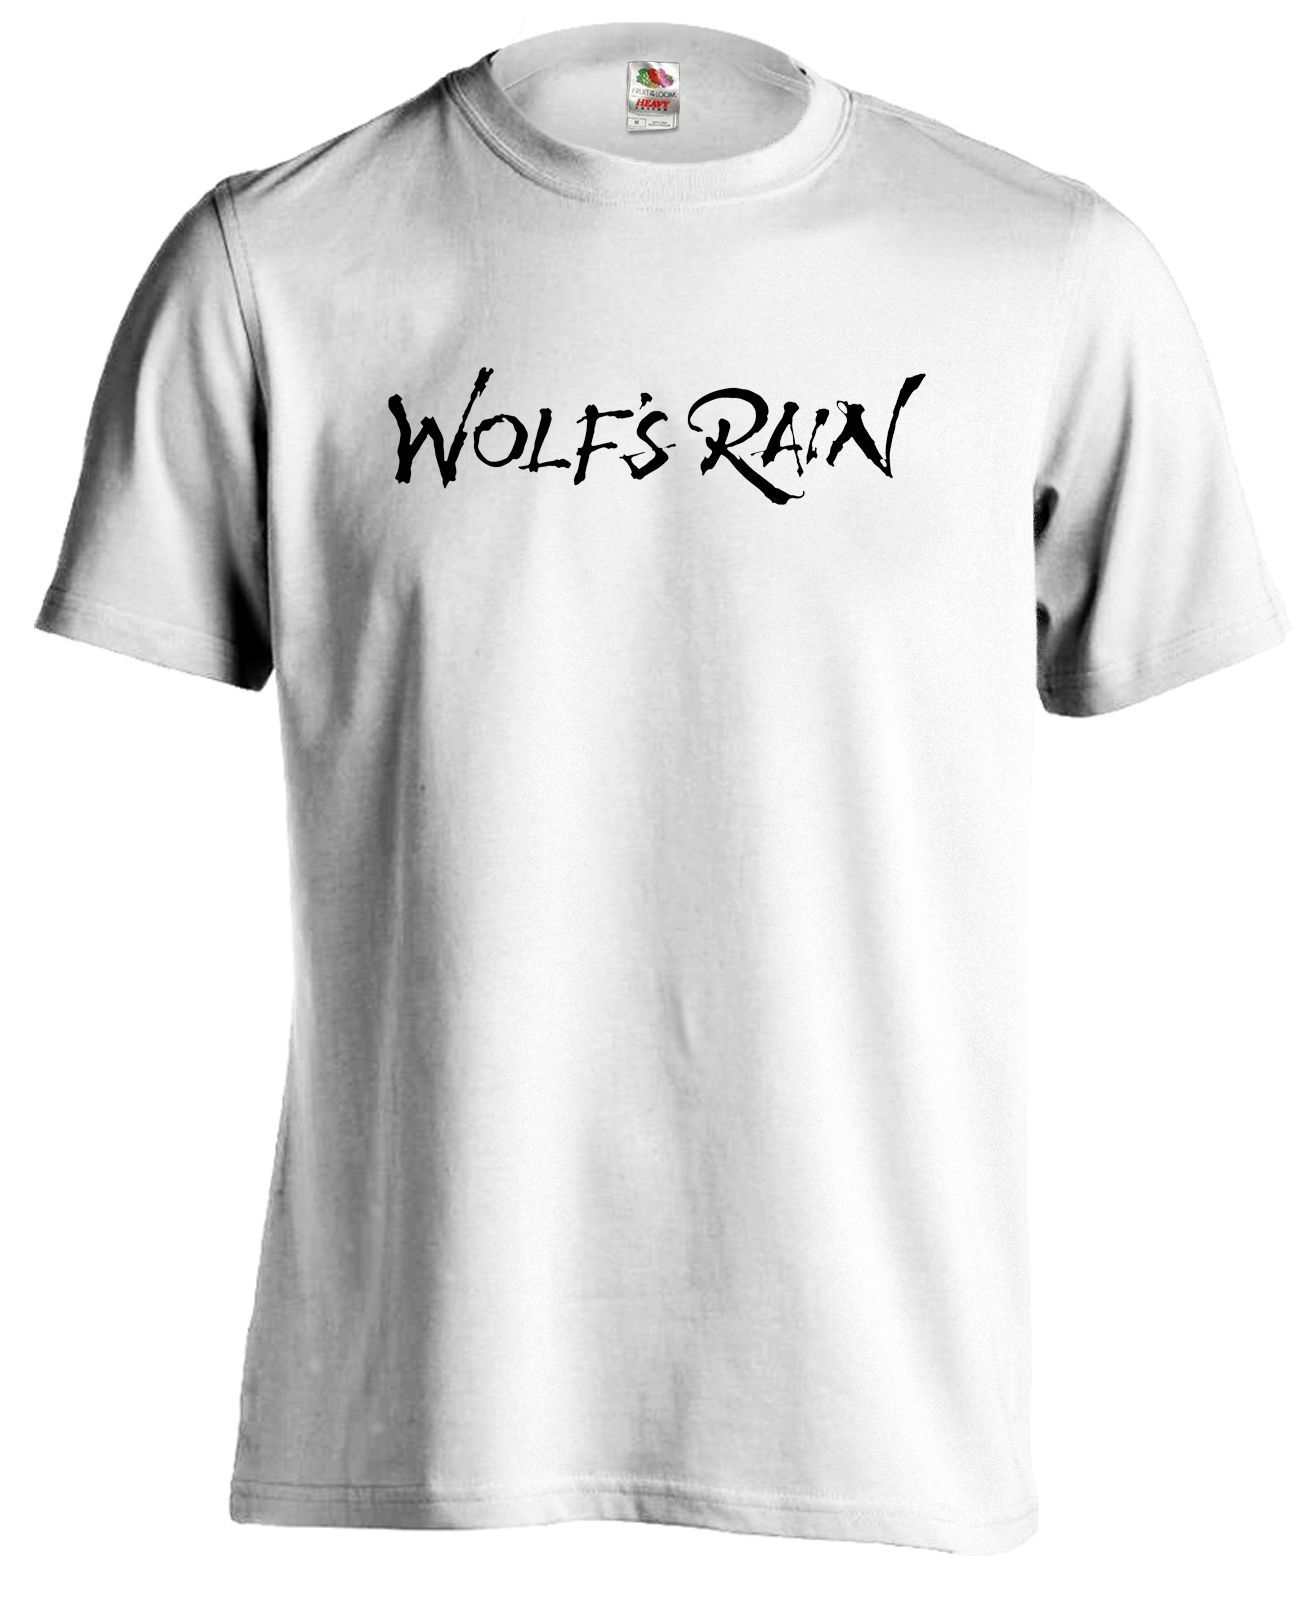 Wolf 39 s Rain logo T shirt Classic Anime Tee Wolfs Manga New T Shirts Funny Tops Tee New Unisex Funny High Quality Casual Printing in T Shirts from Men 39 s Clothing